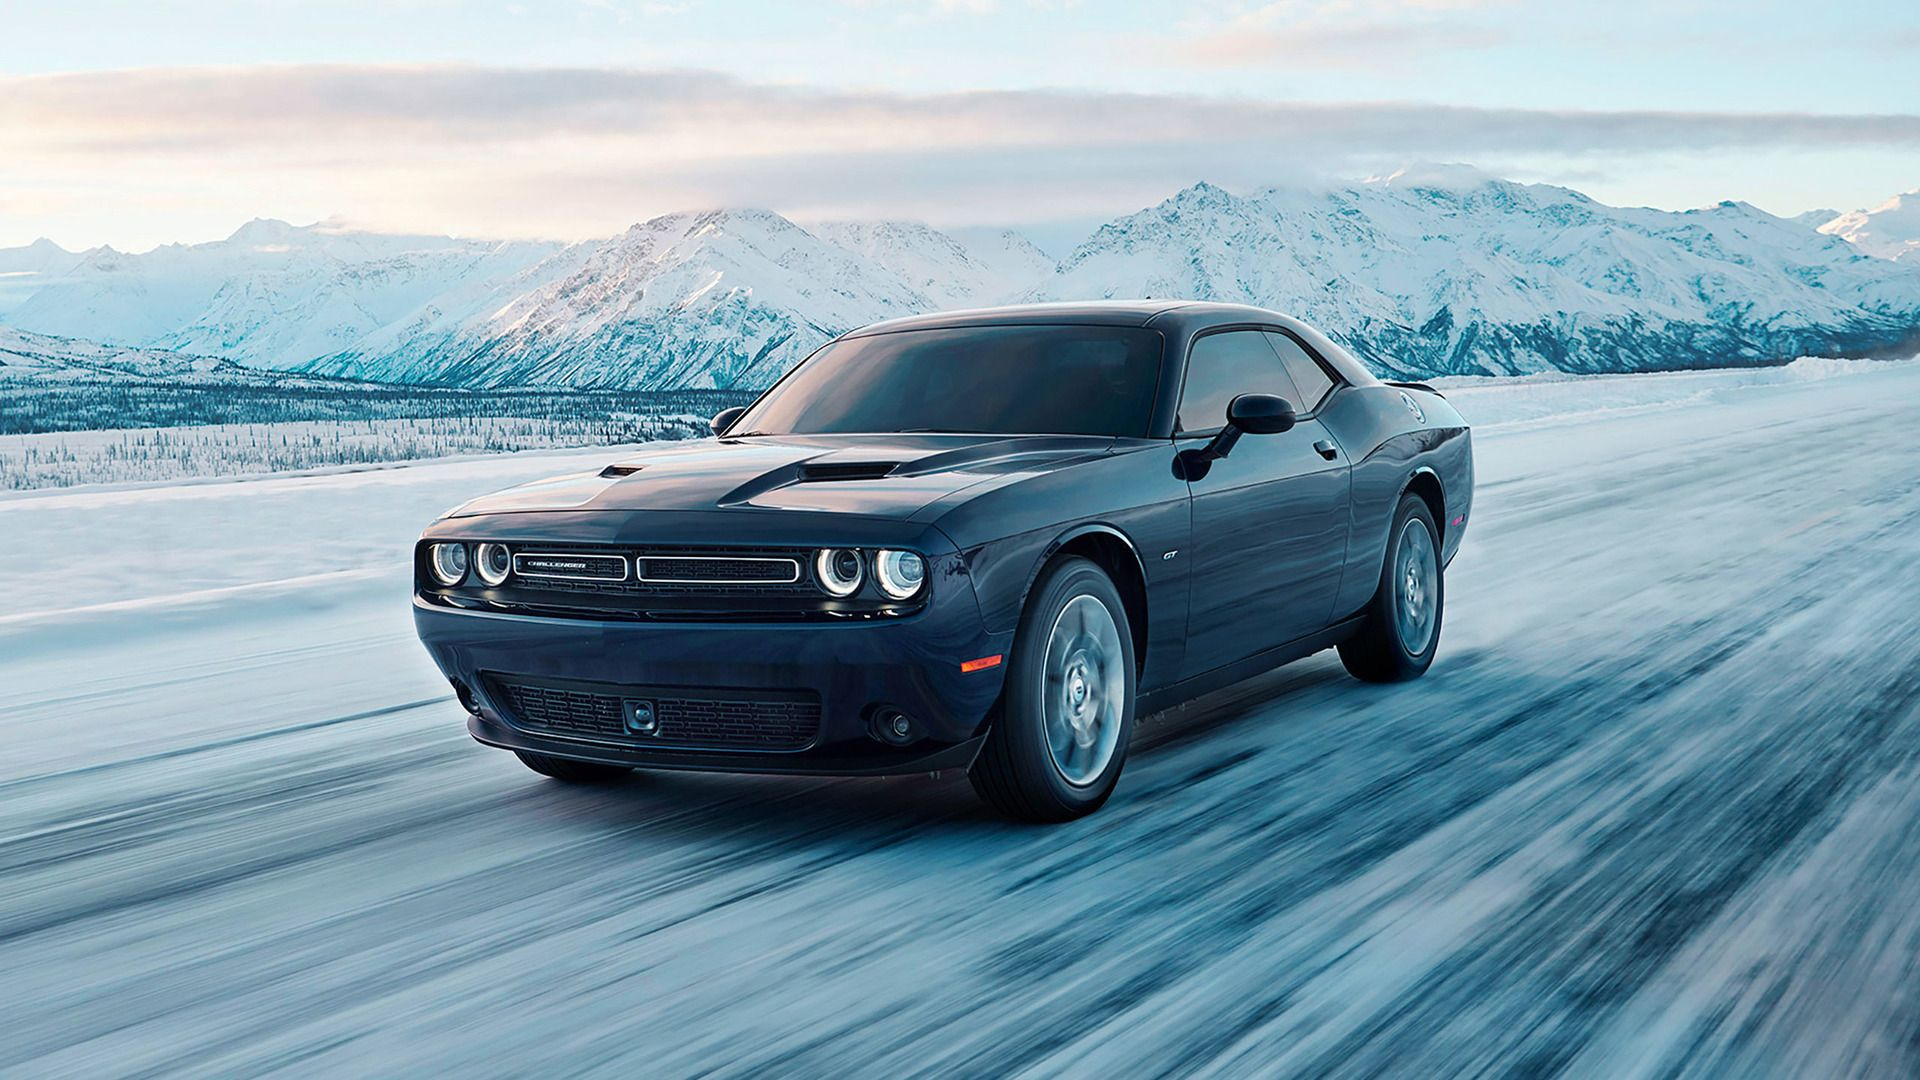 Dodge Challenger Gt Awd Background In 2020 With Images Dodge Challenger Gt Dodge Challenger 2018 Dodge Challenger